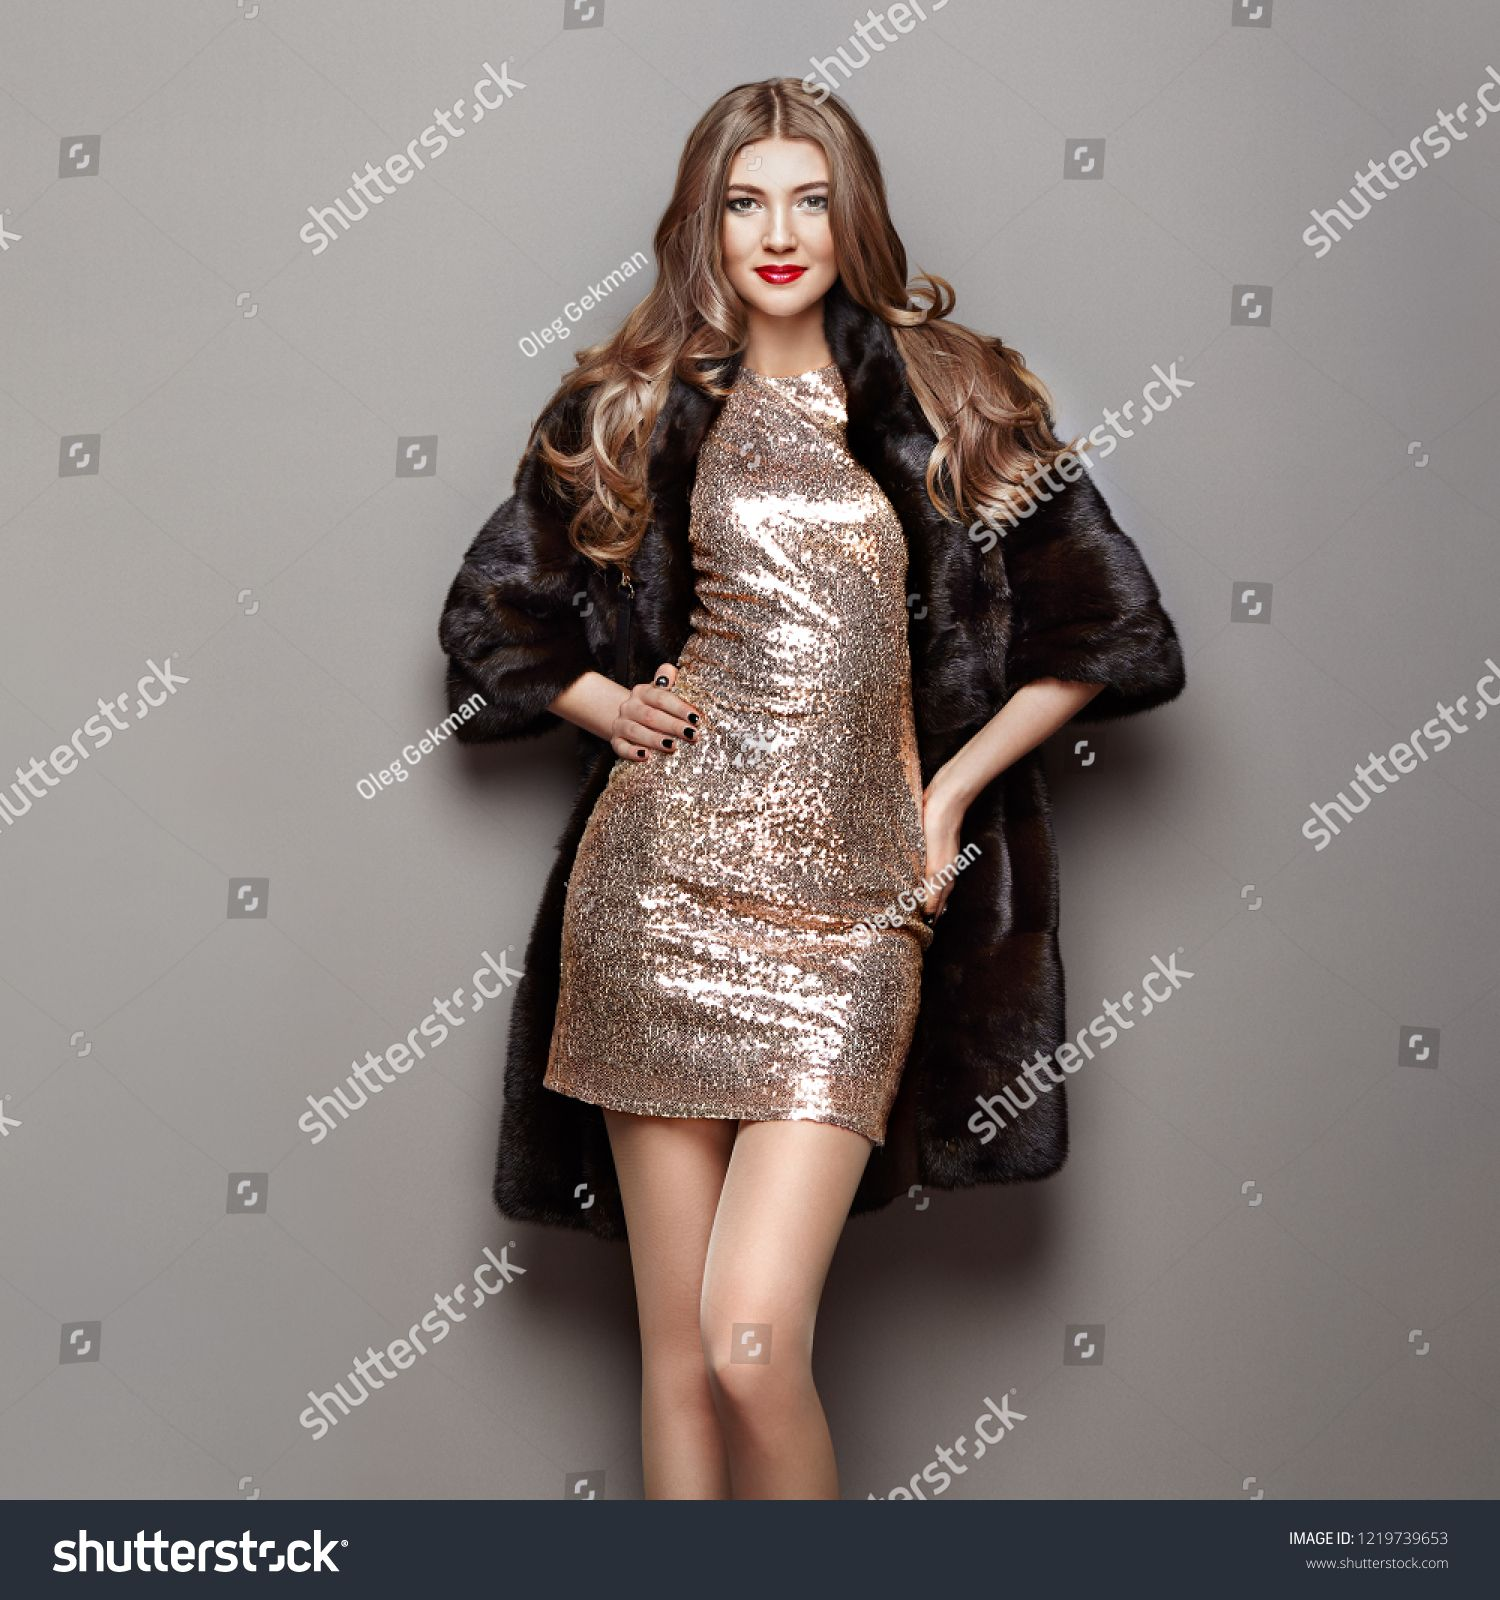 0d8f8d0643f Fashion Portrait Young Woman in Black Fur Coat. Girl with Elegant ...